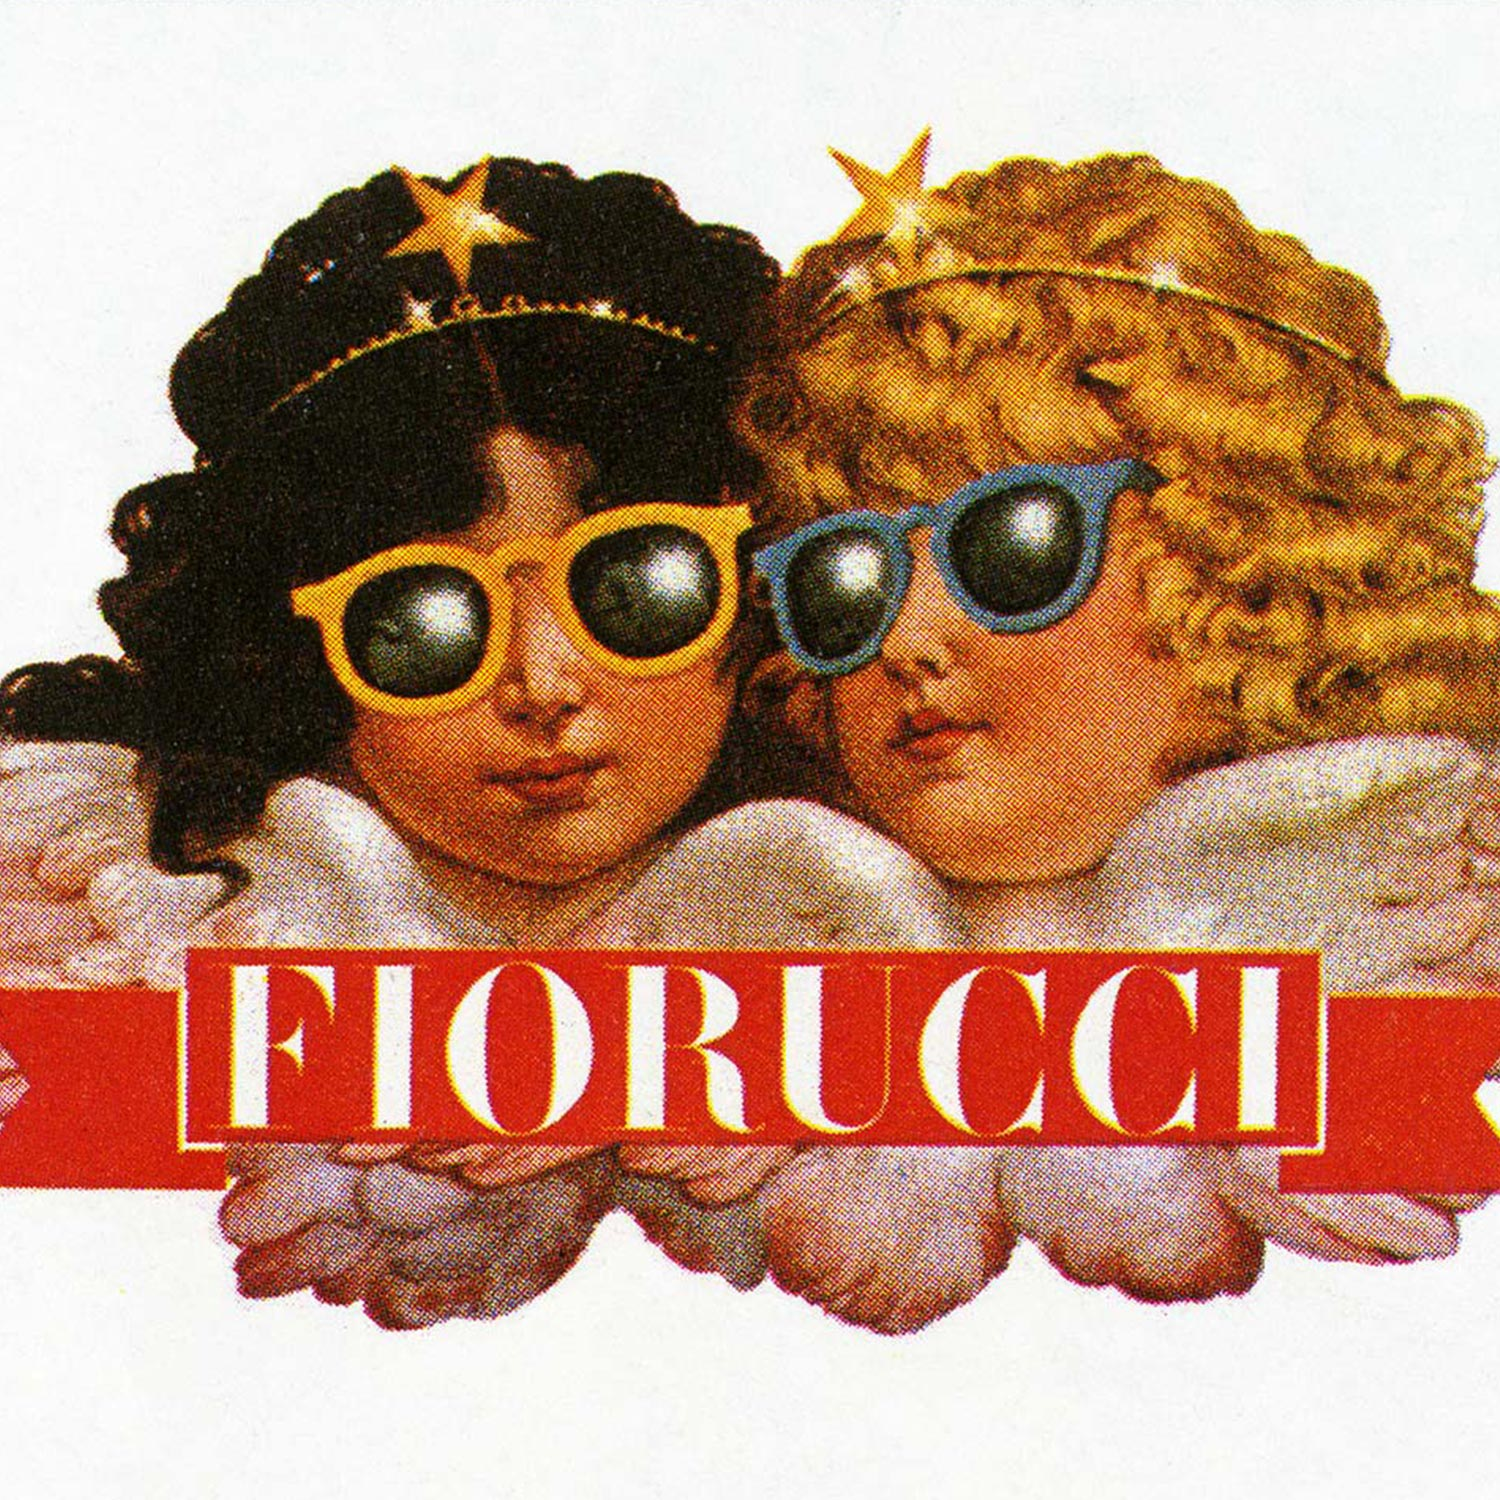 Fiorruci: the Italo-casual brand